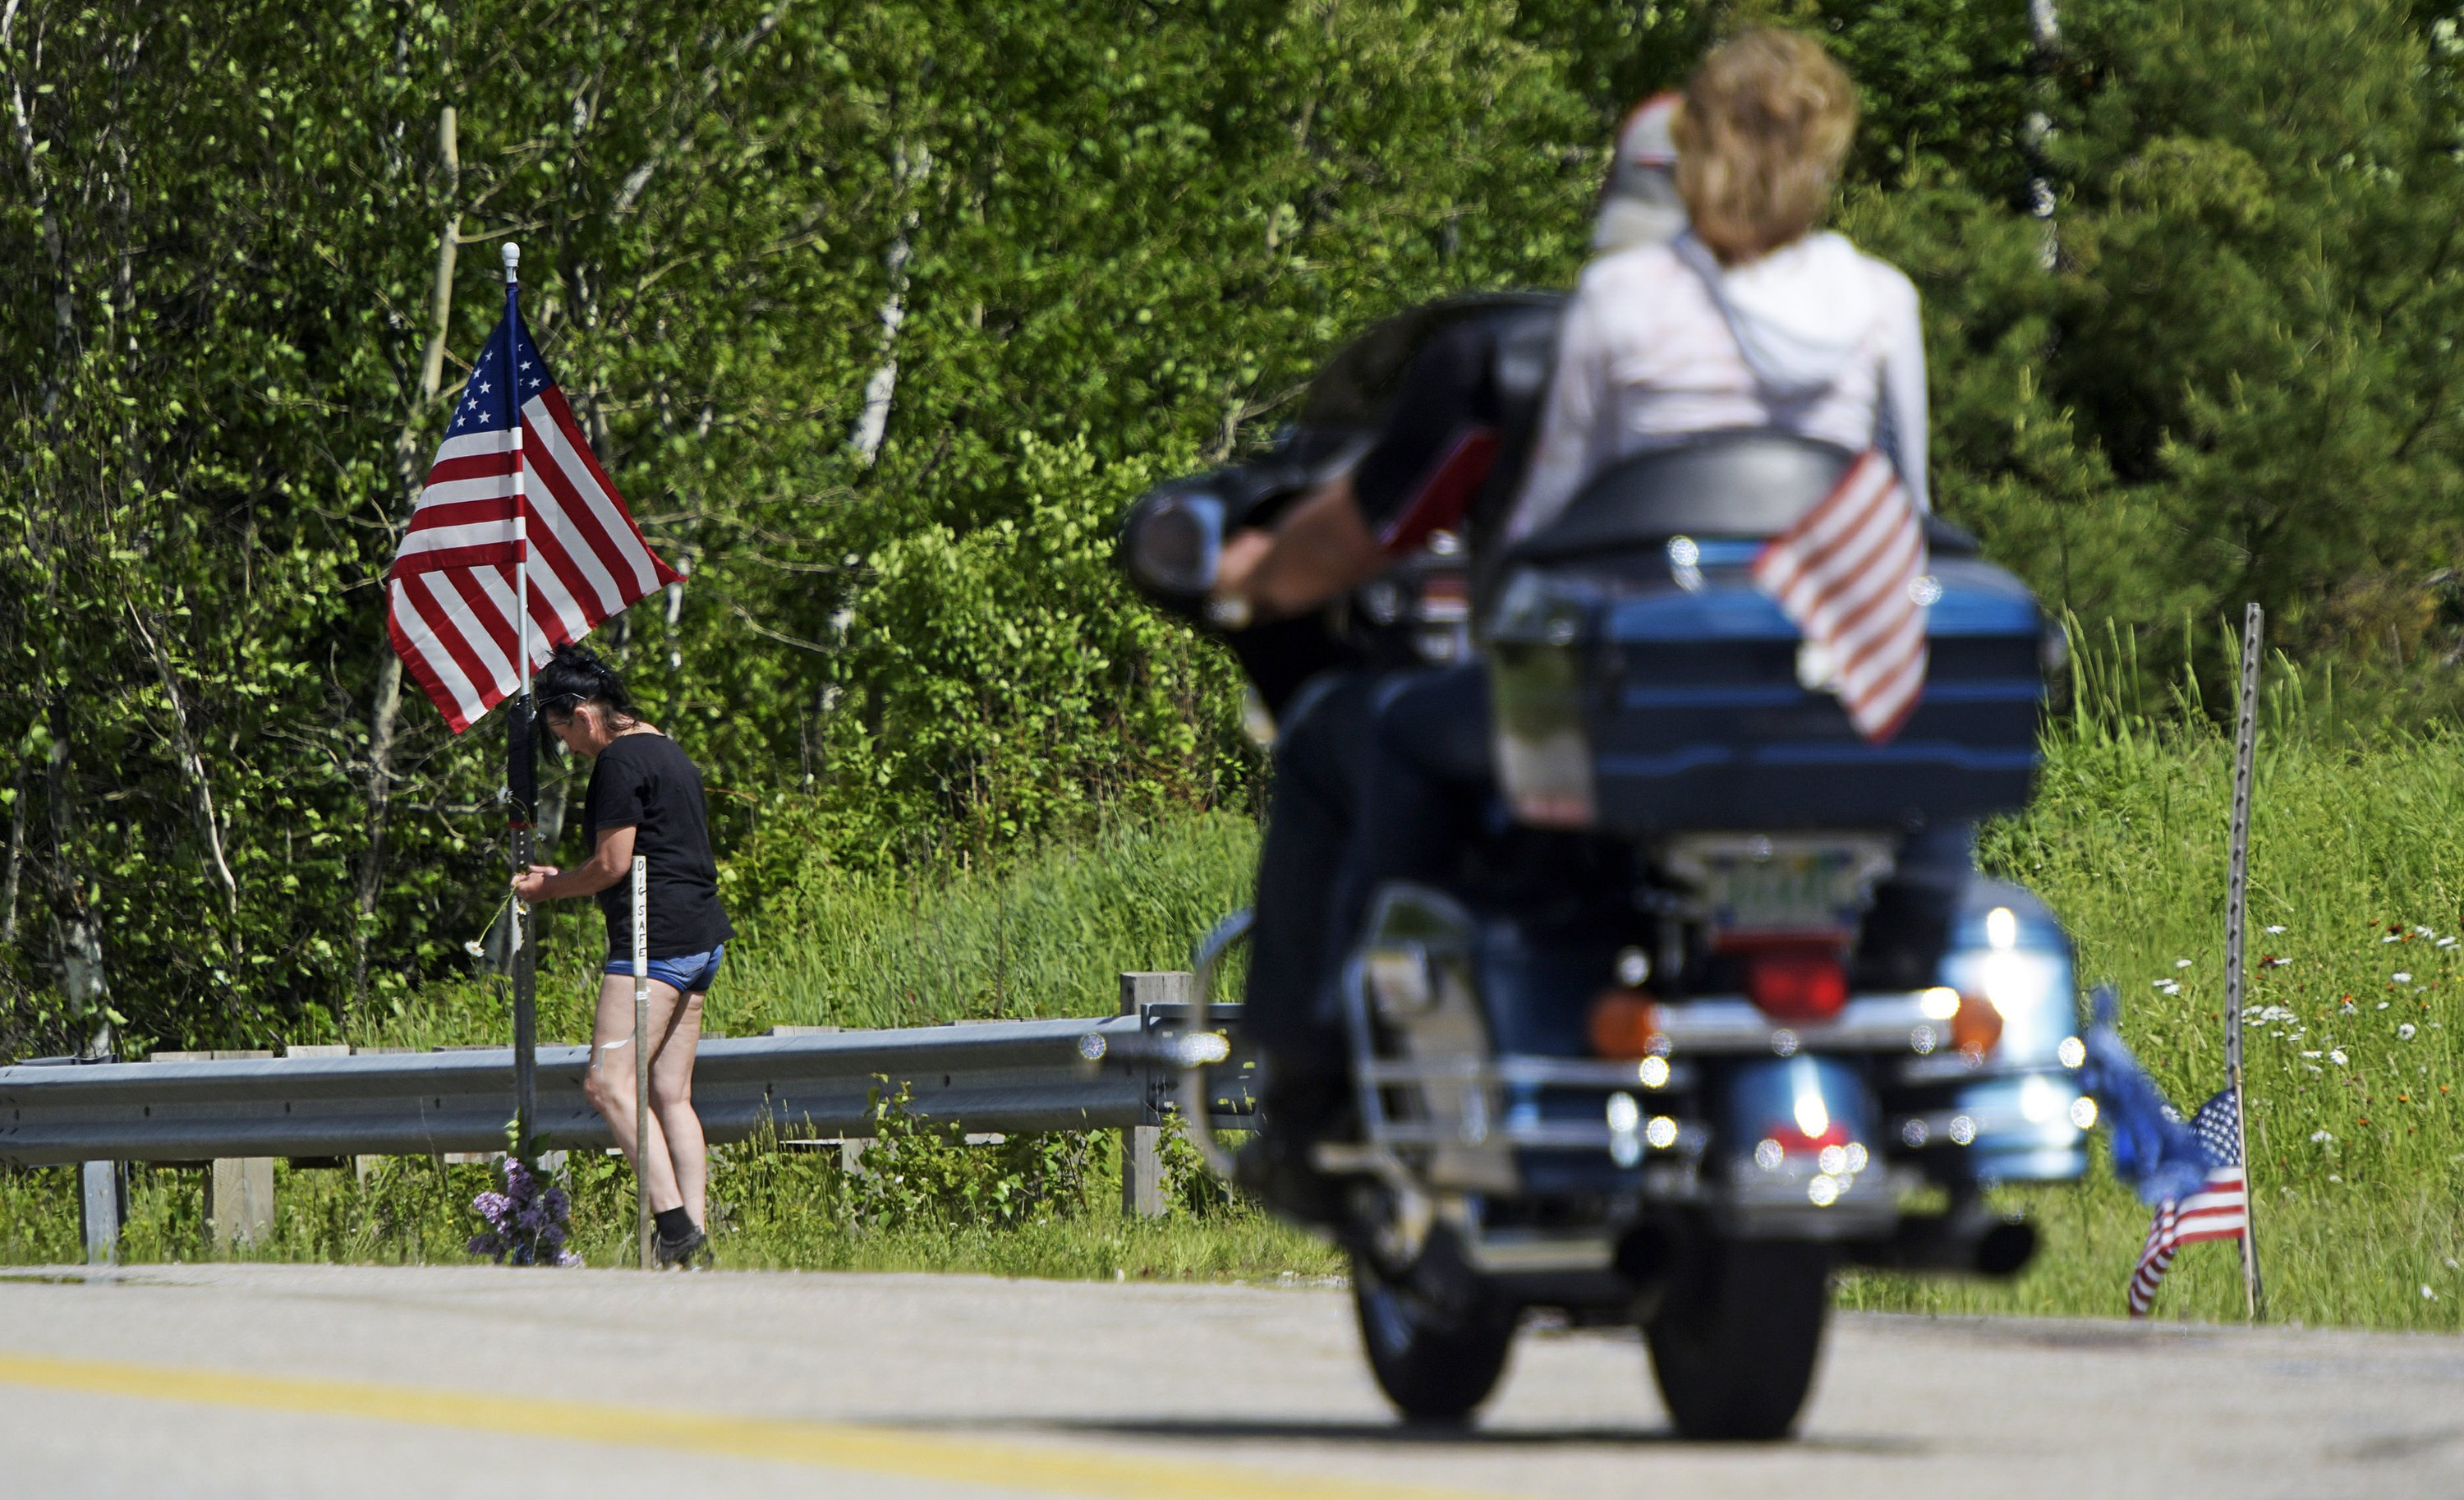 The Latest: Police identify victims of biking accident